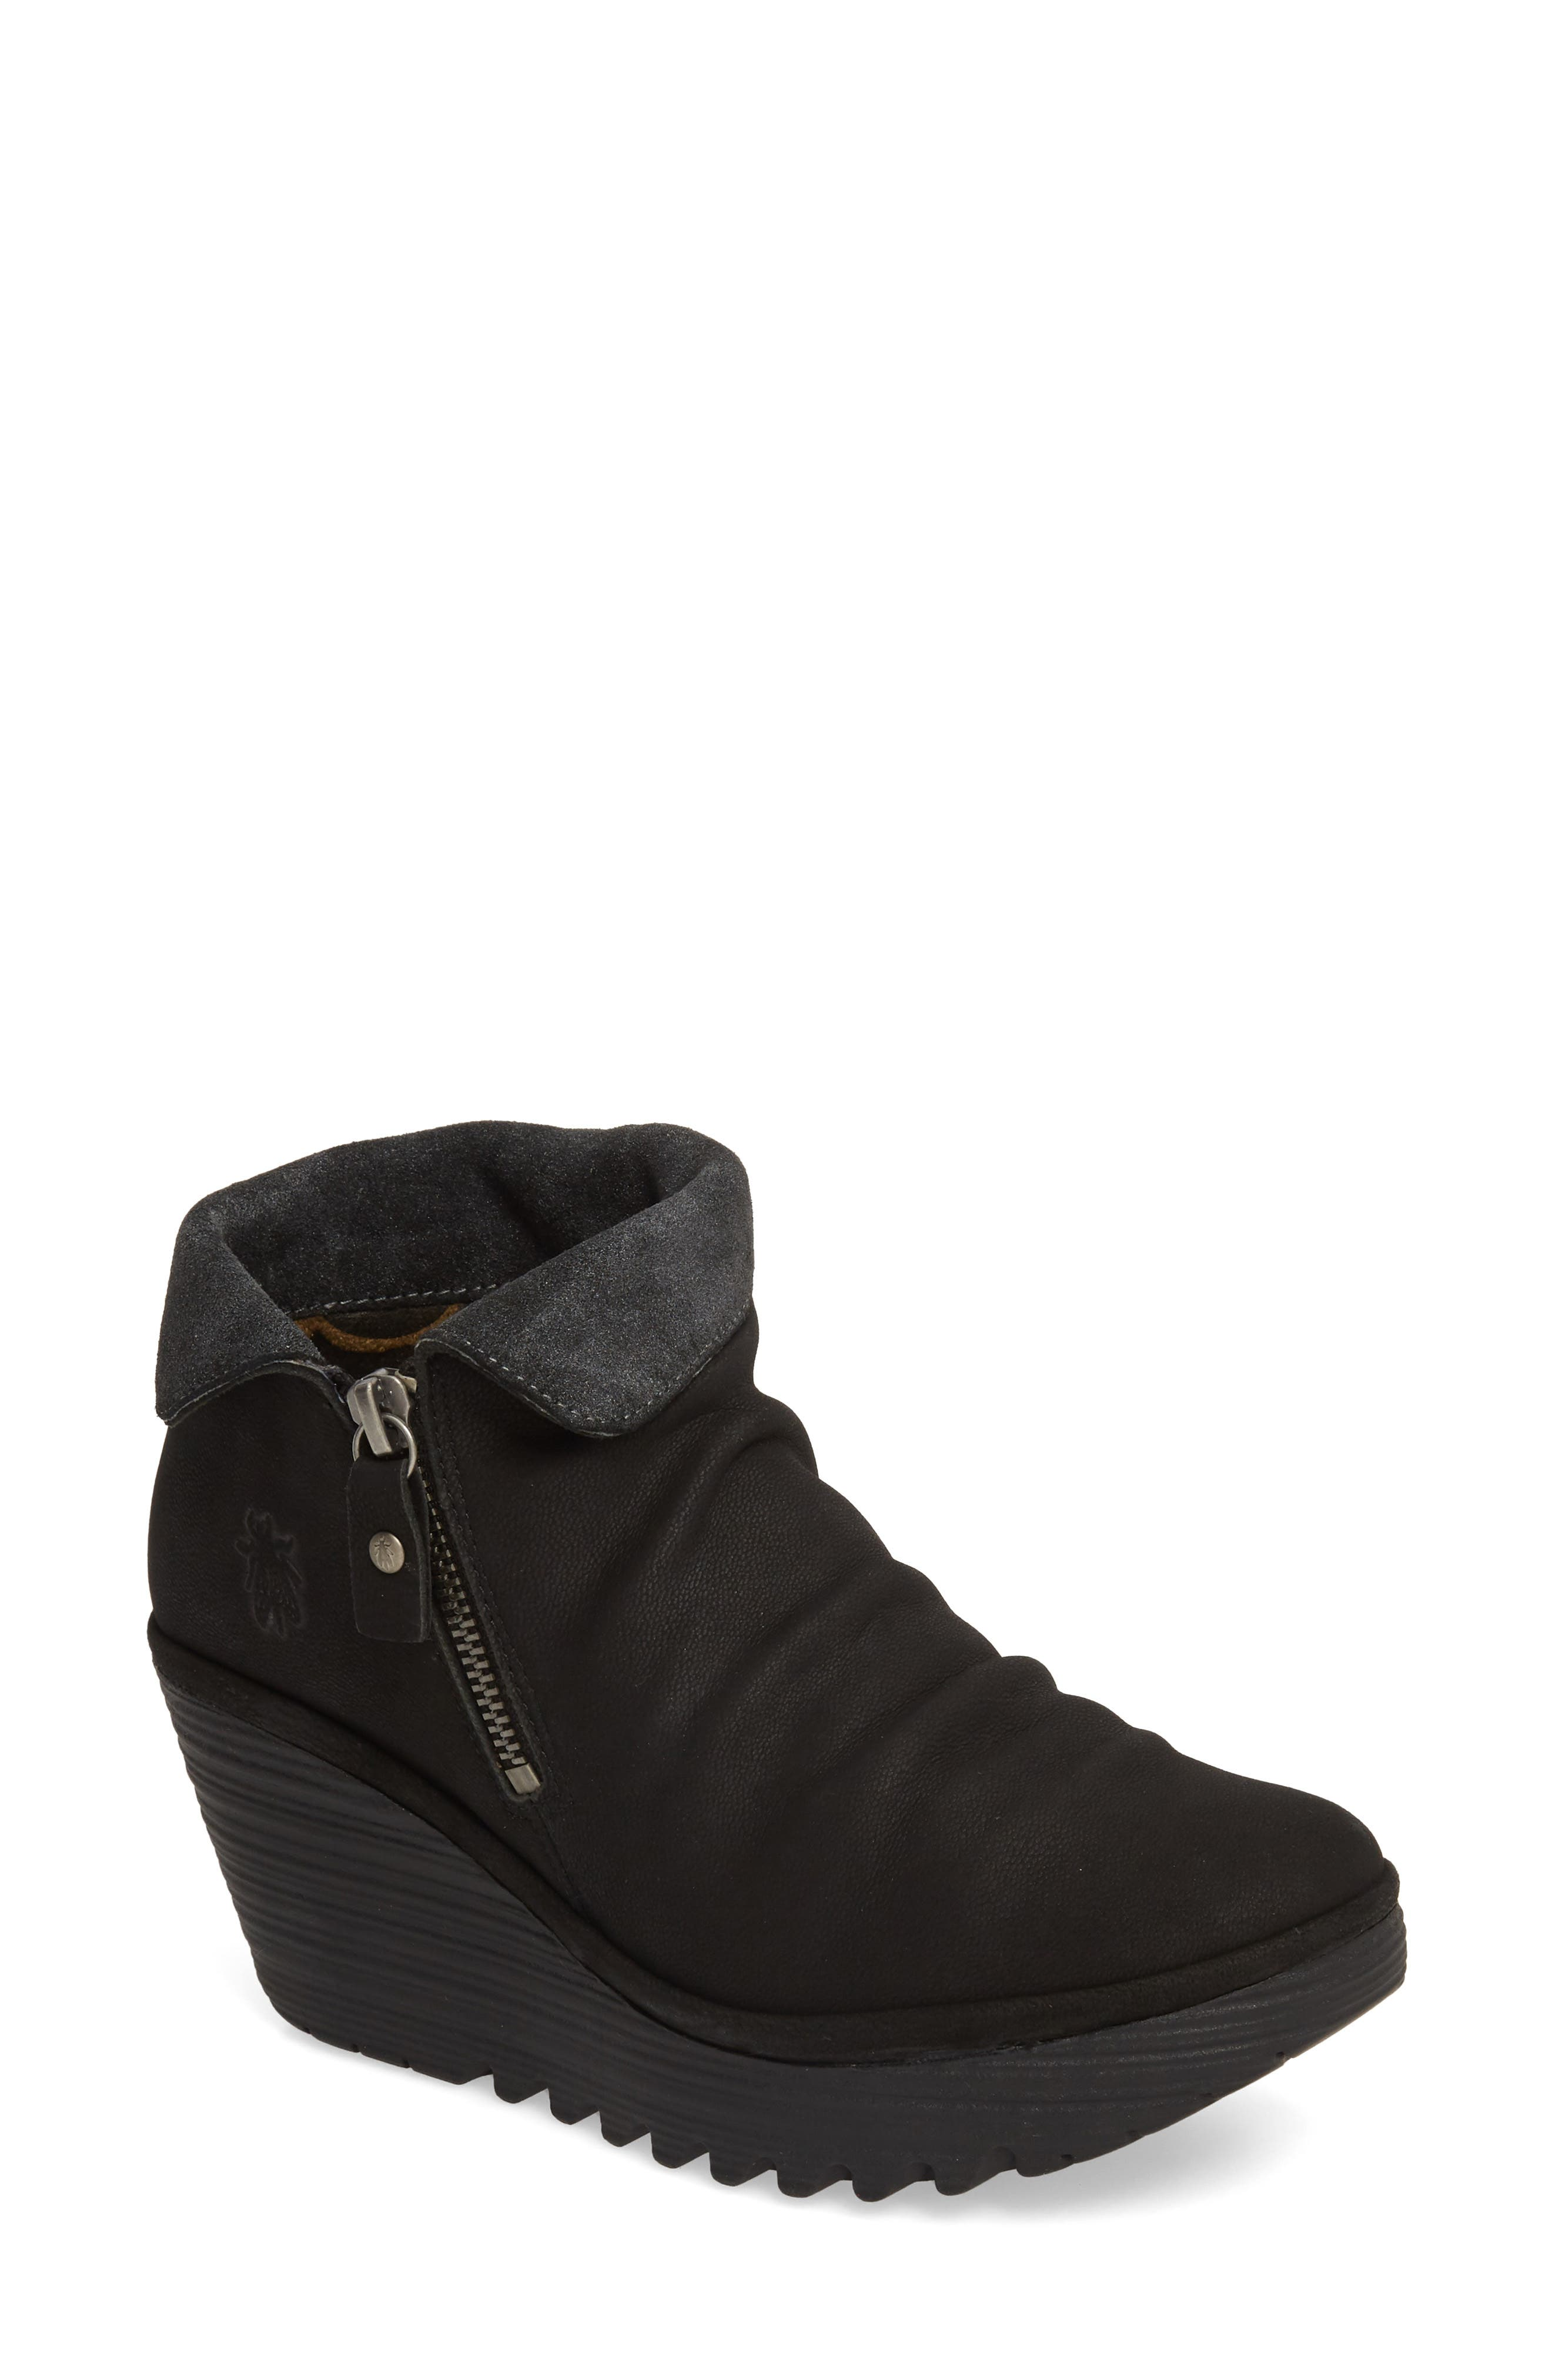 Yoxi Wedge Bootie,                         Main,                         color, BLACK/ ANTHRACITE